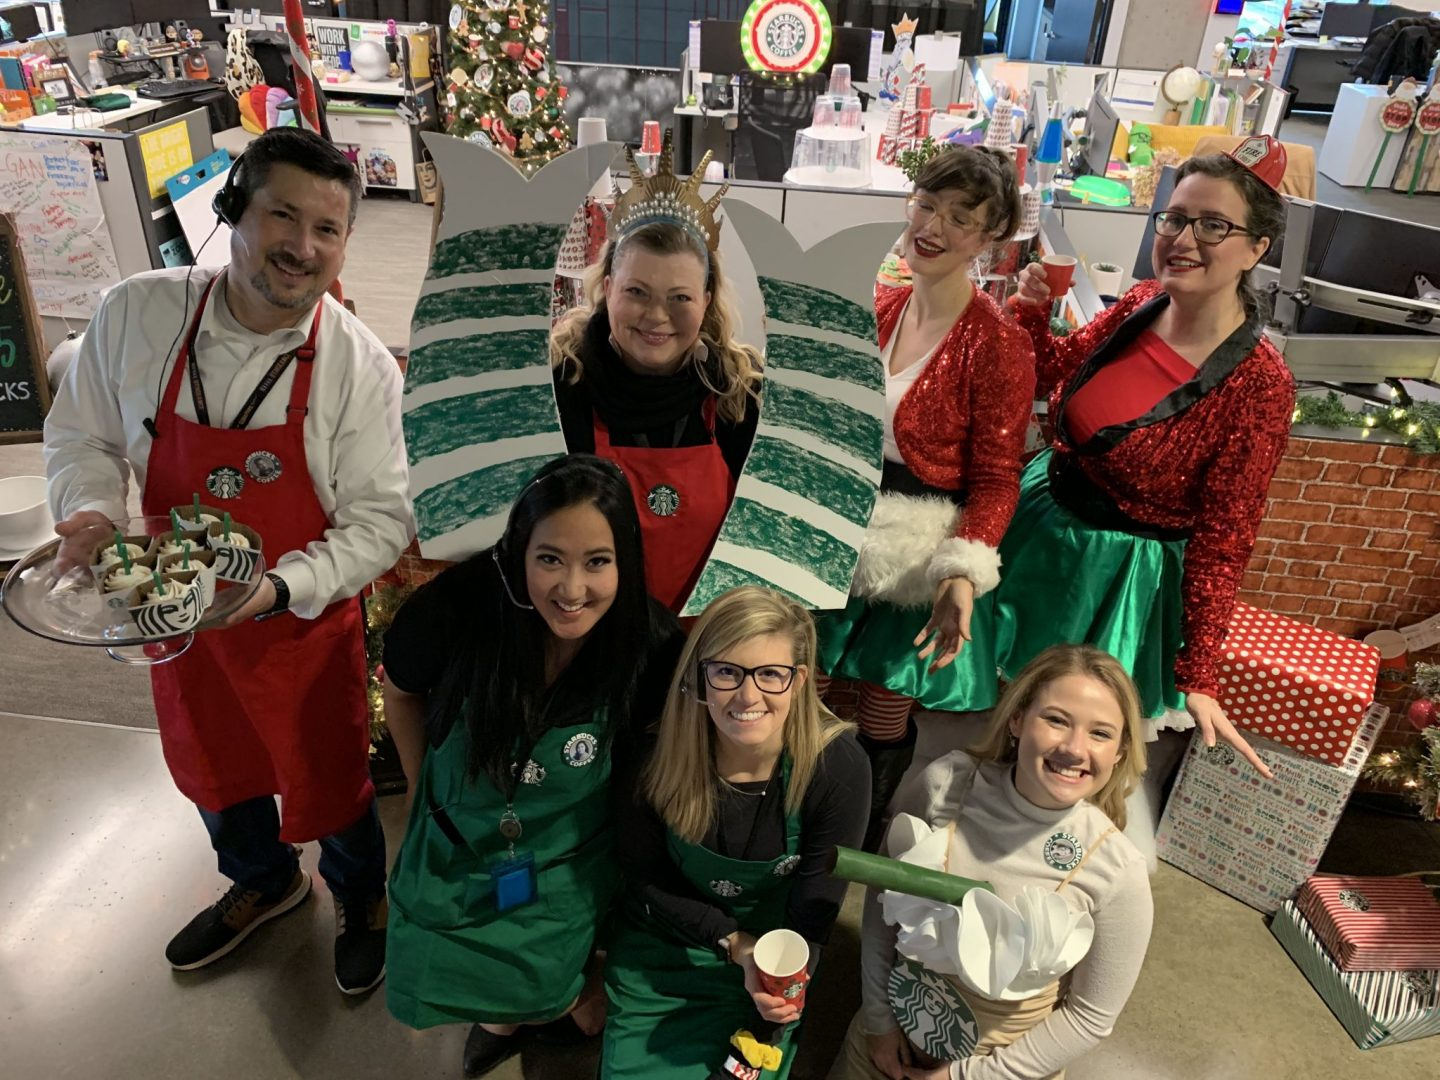 Deck the Halls with KING 5 Sales Department 4th Annual Holiday Pod Decorating Contest featuring a tree farm, Gingerbread Village, Santacon, Starbucks, and more!